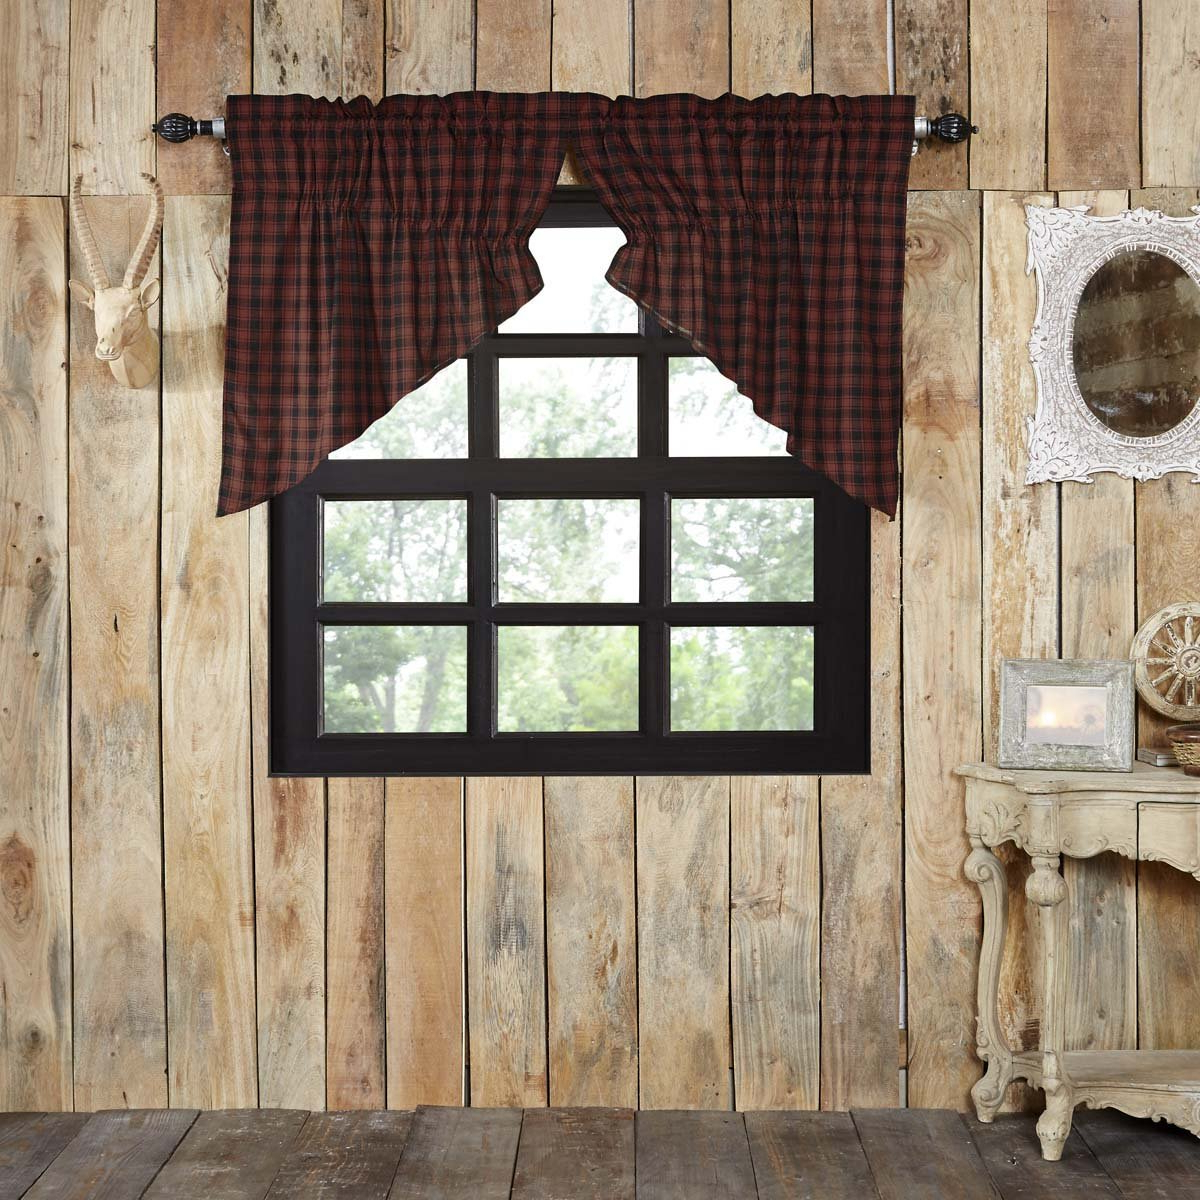 Fashionable Red Rustic Kitchen Curtains Throughout Chili Pepper Red Rustic & Lodge Kitchen Curtains Shasta (Gallery 5 of 20)